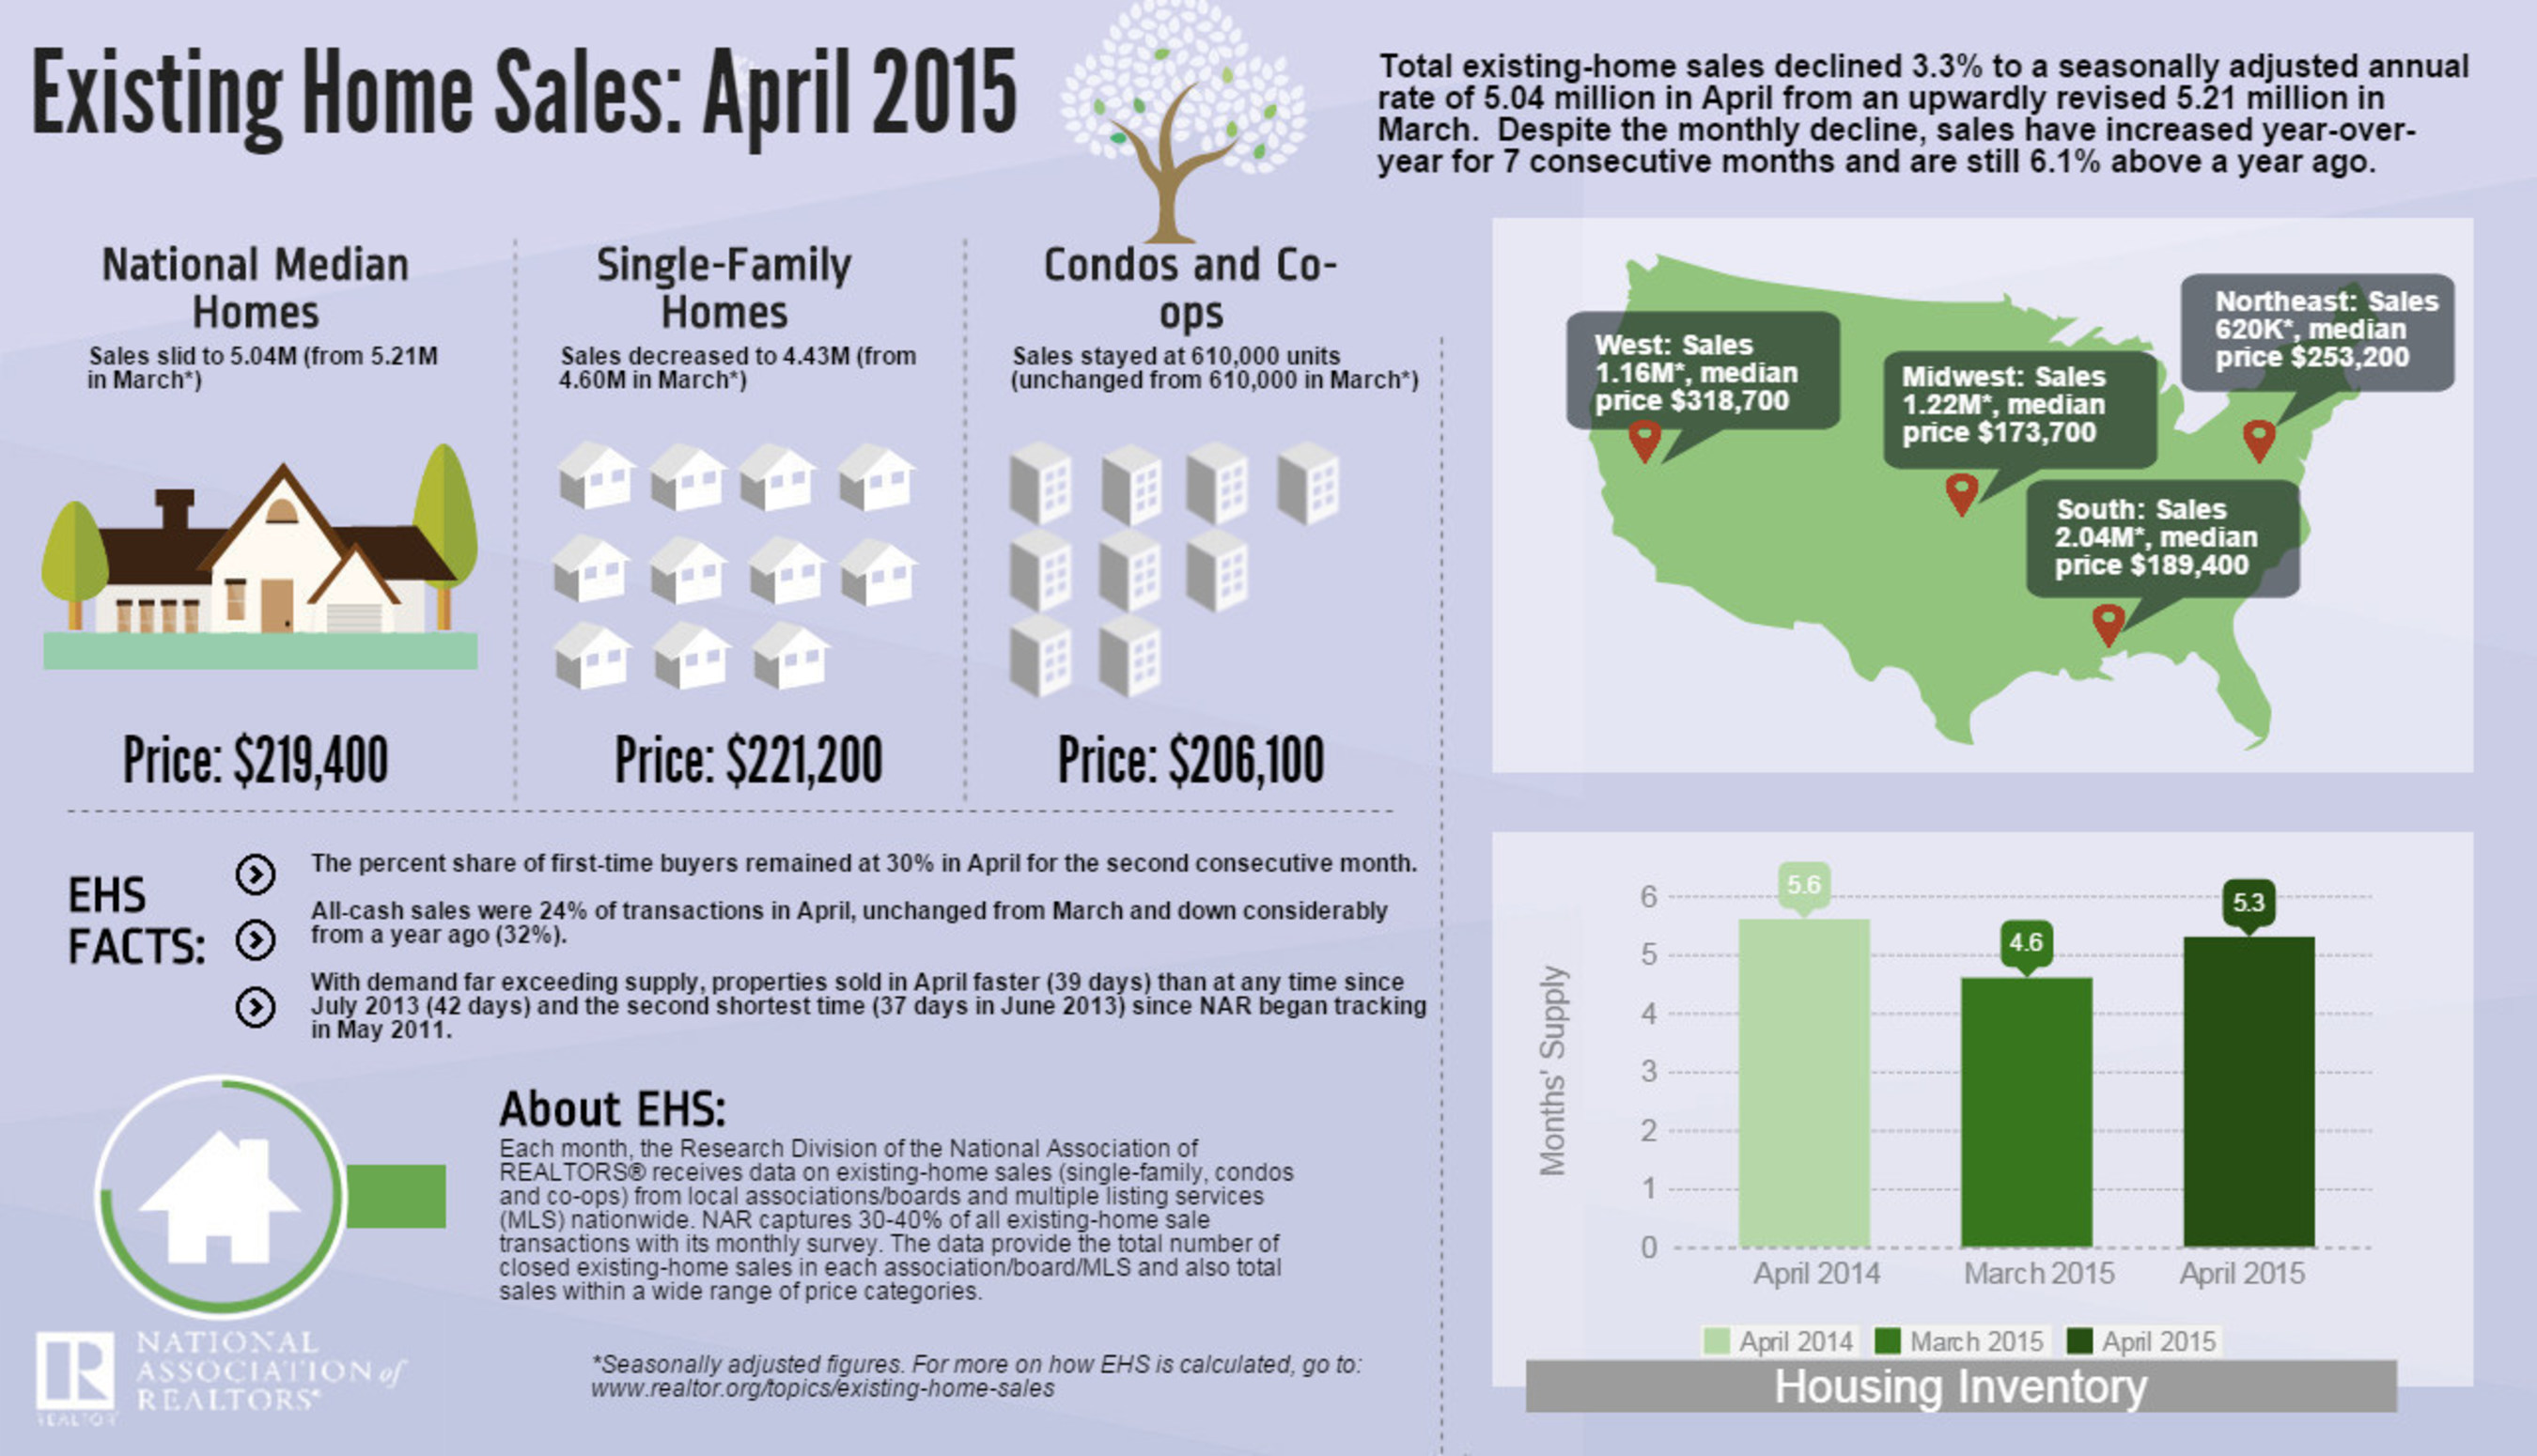 Existing-Home Sales Lose Momentum in April